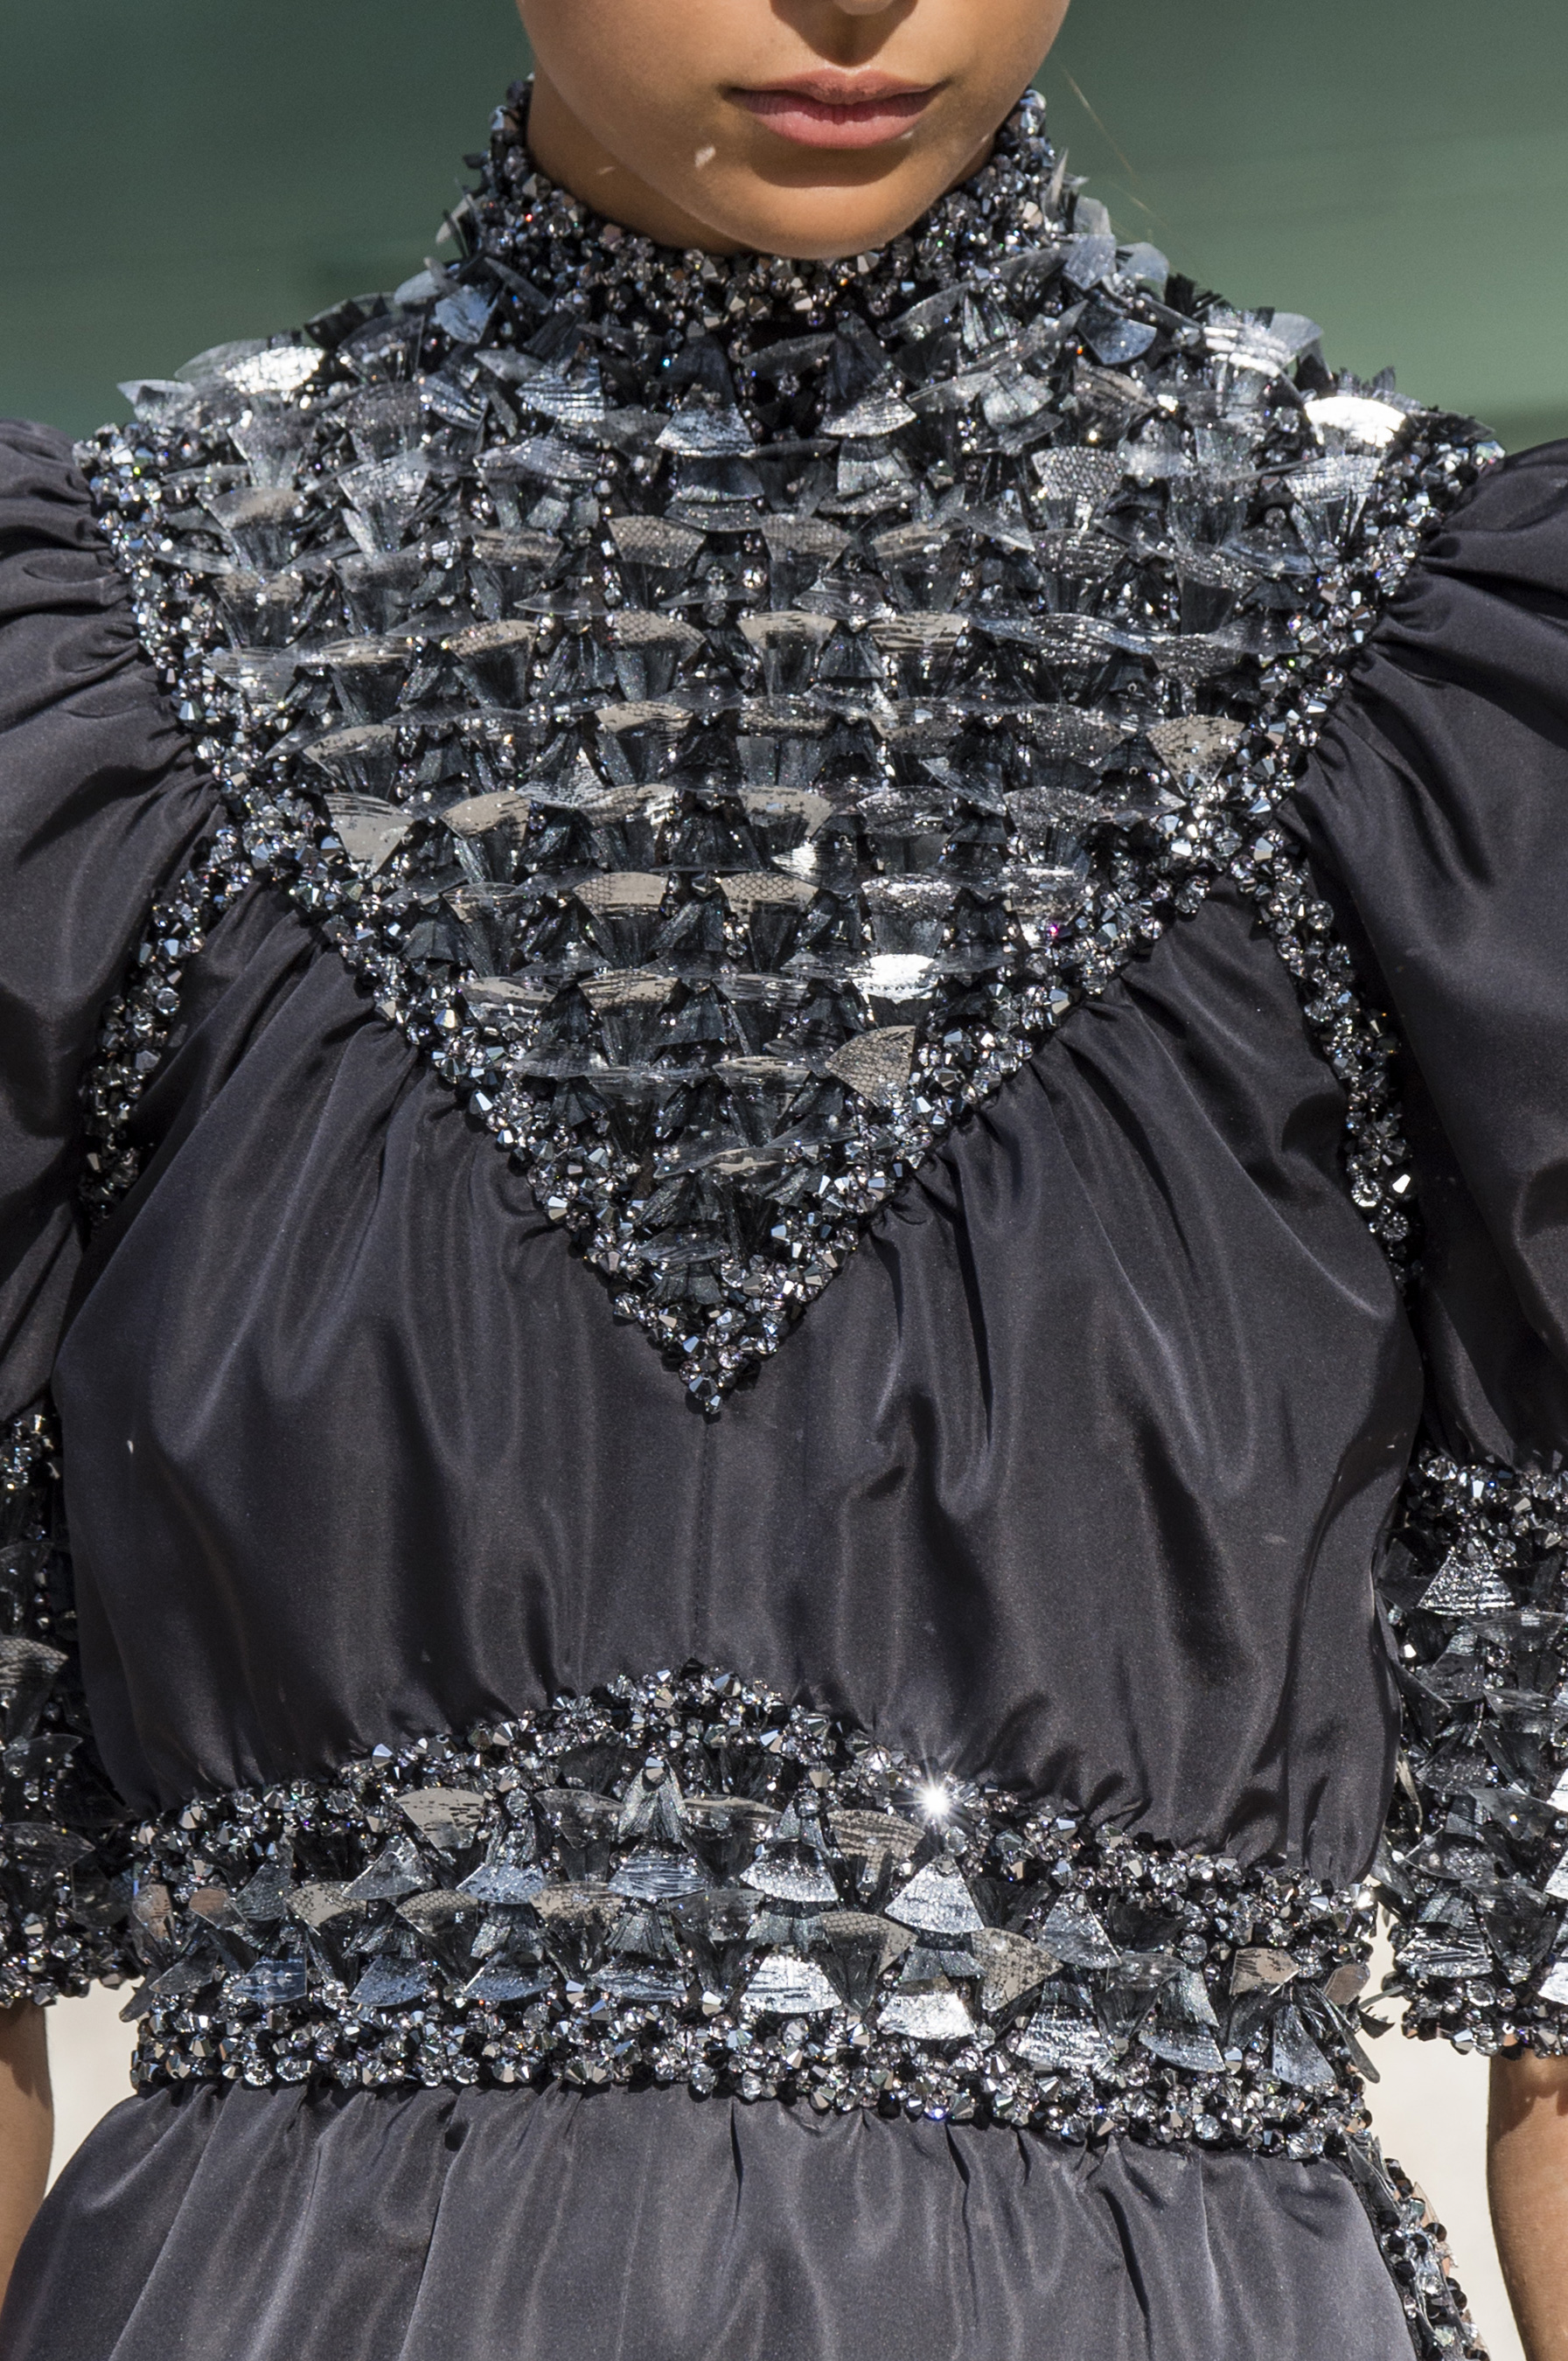 Chanel Fall 2018 Couture Fashion Show Details